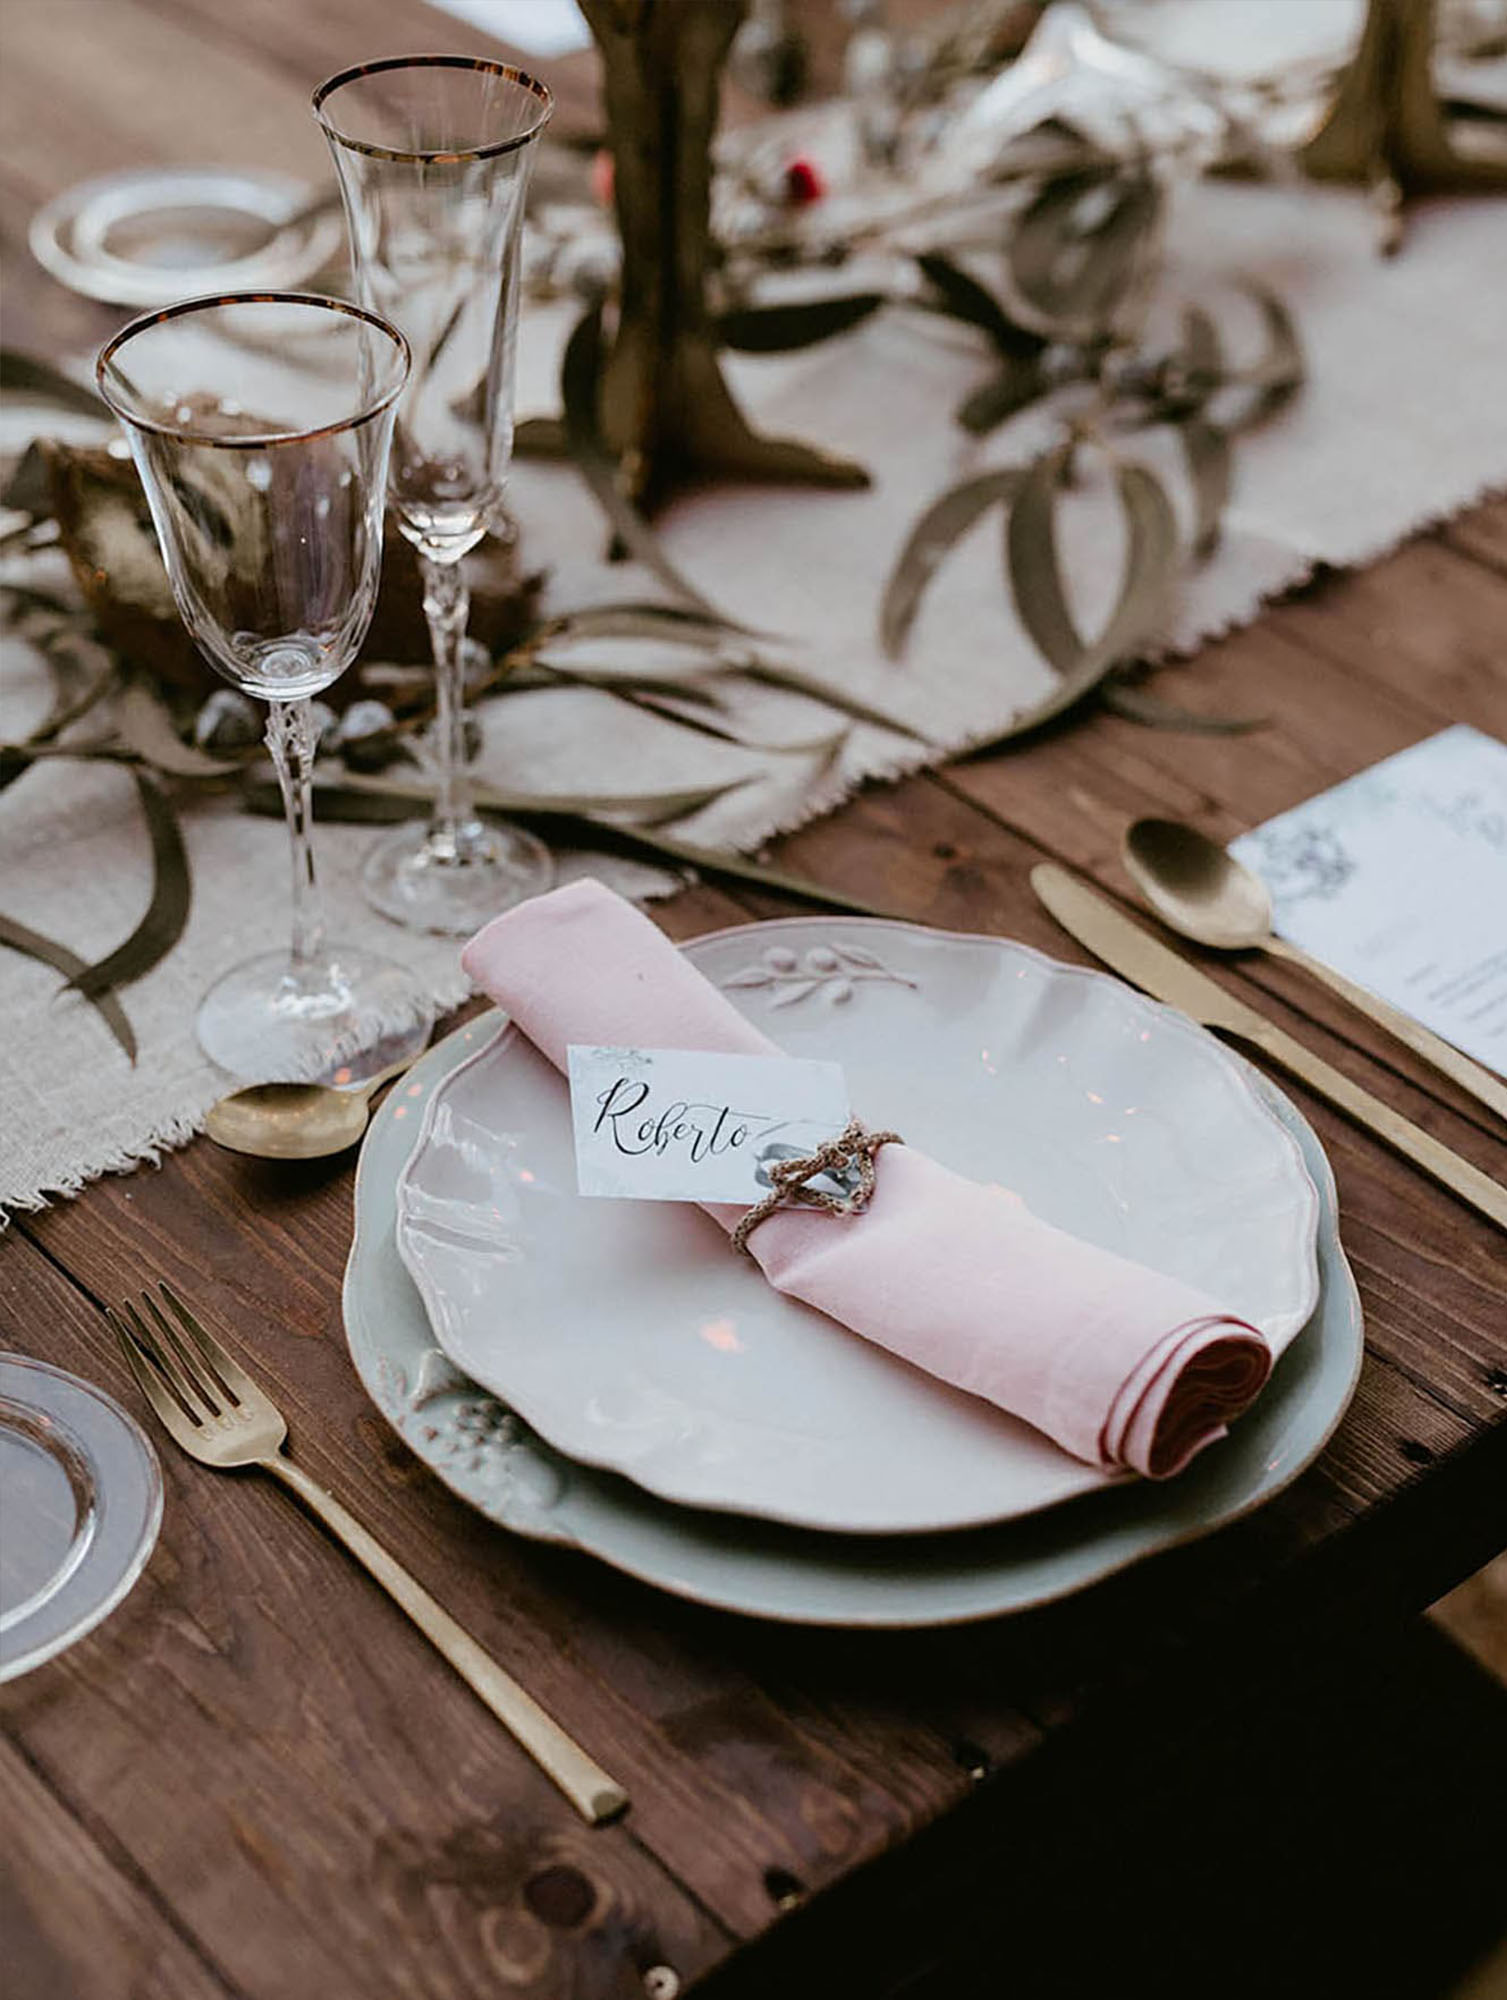 Lidia-Event-Wedding-Botique-Plato-Detalle.jpg